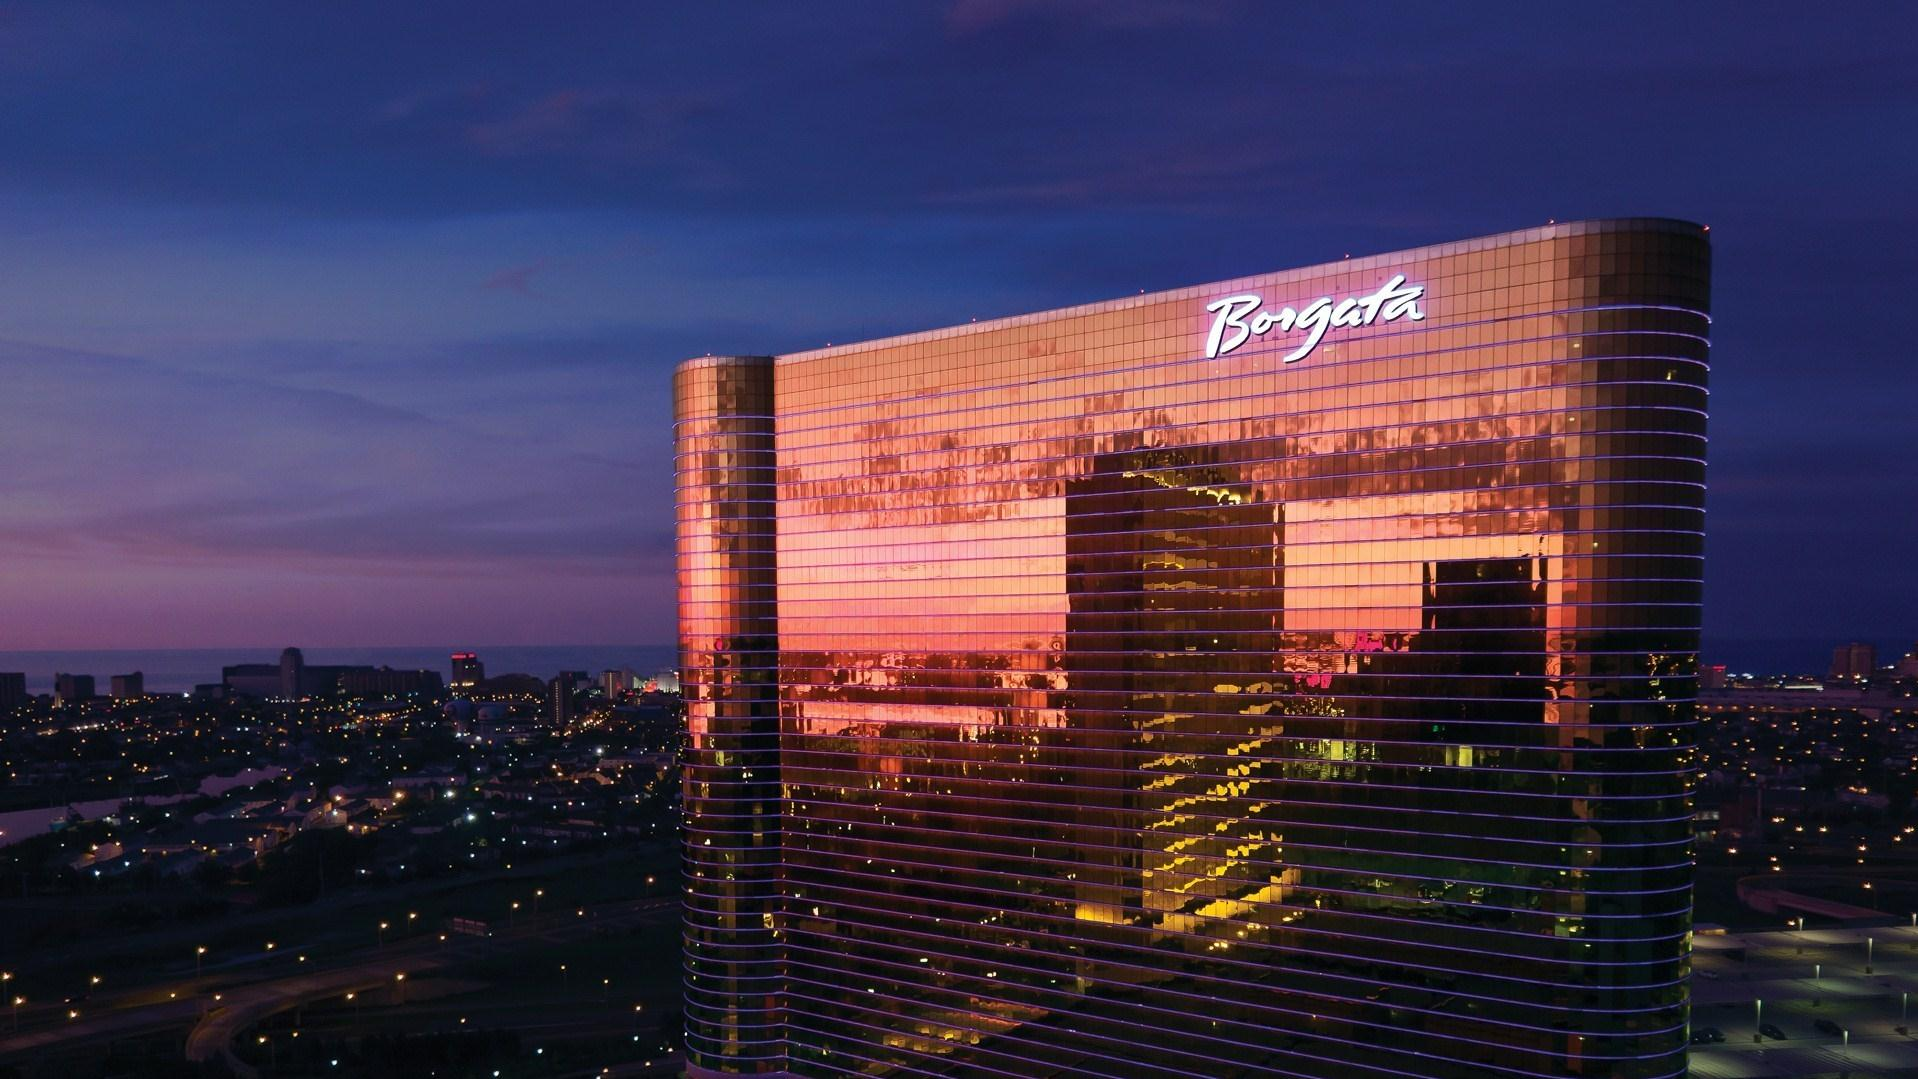 Borgata Event Center Tickets